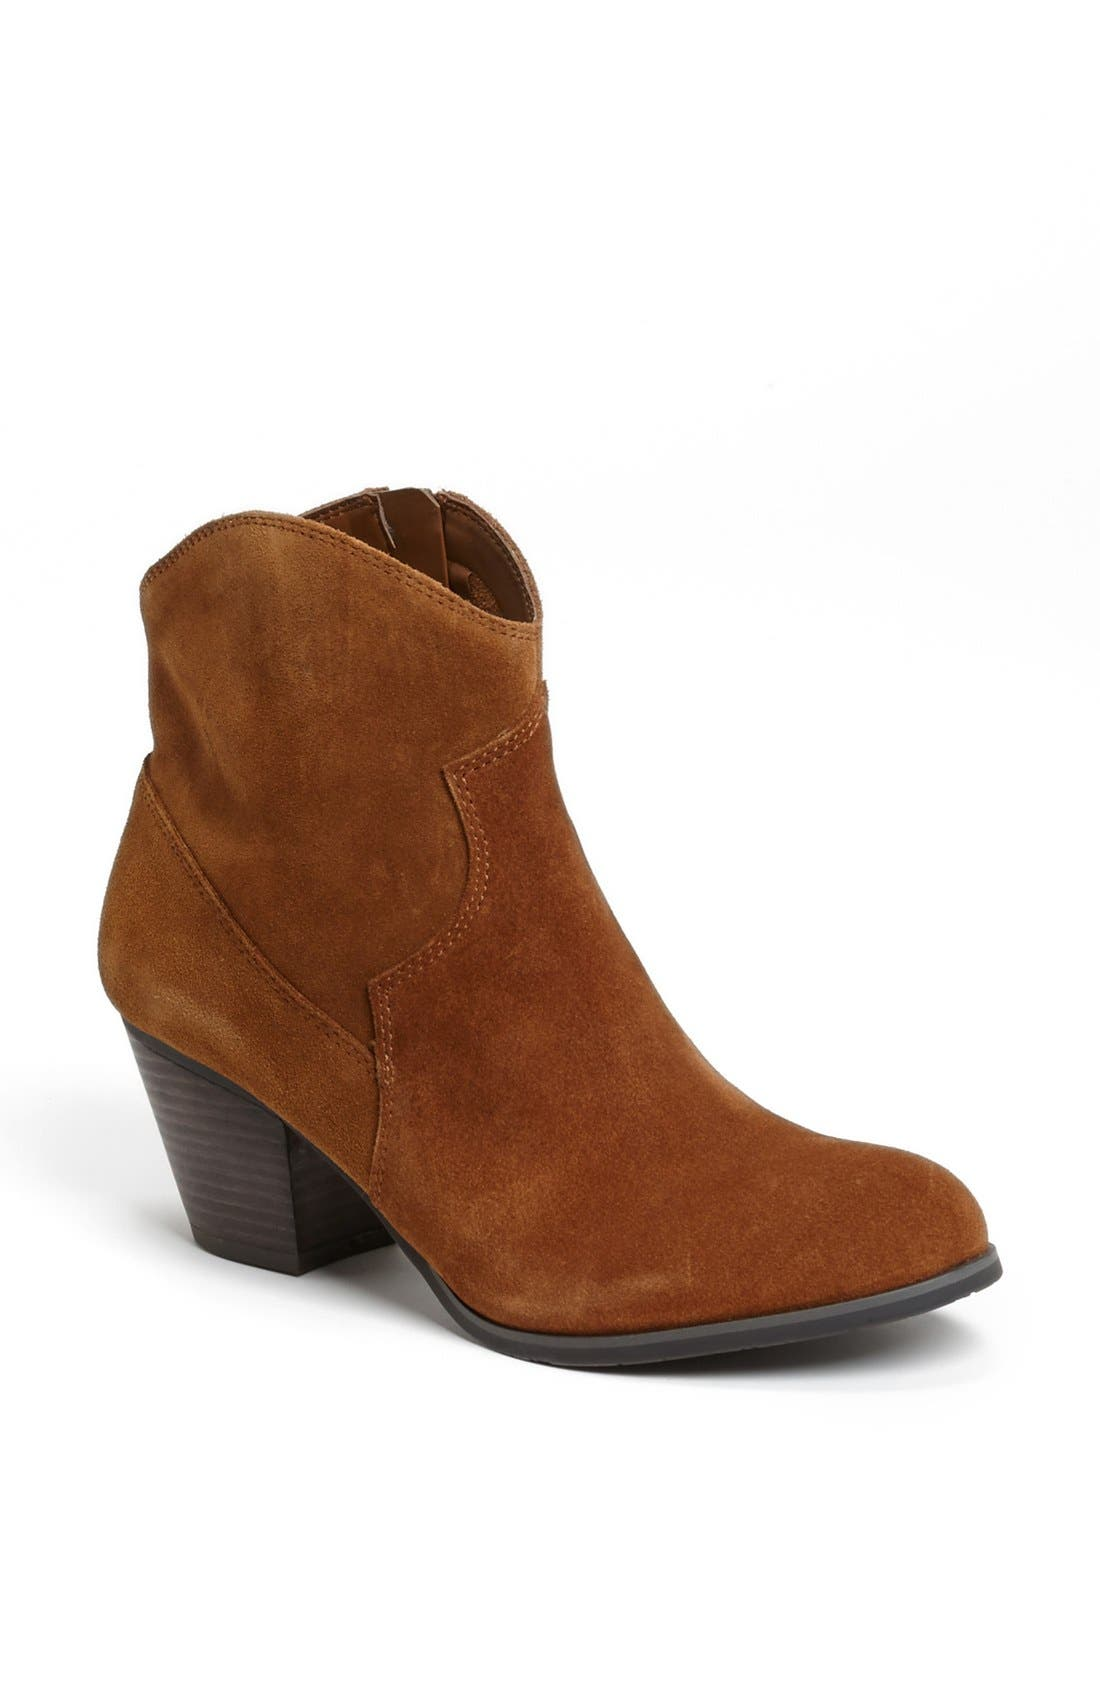 Main Image - Franco Sarto 'Hutch' Leather Bootie